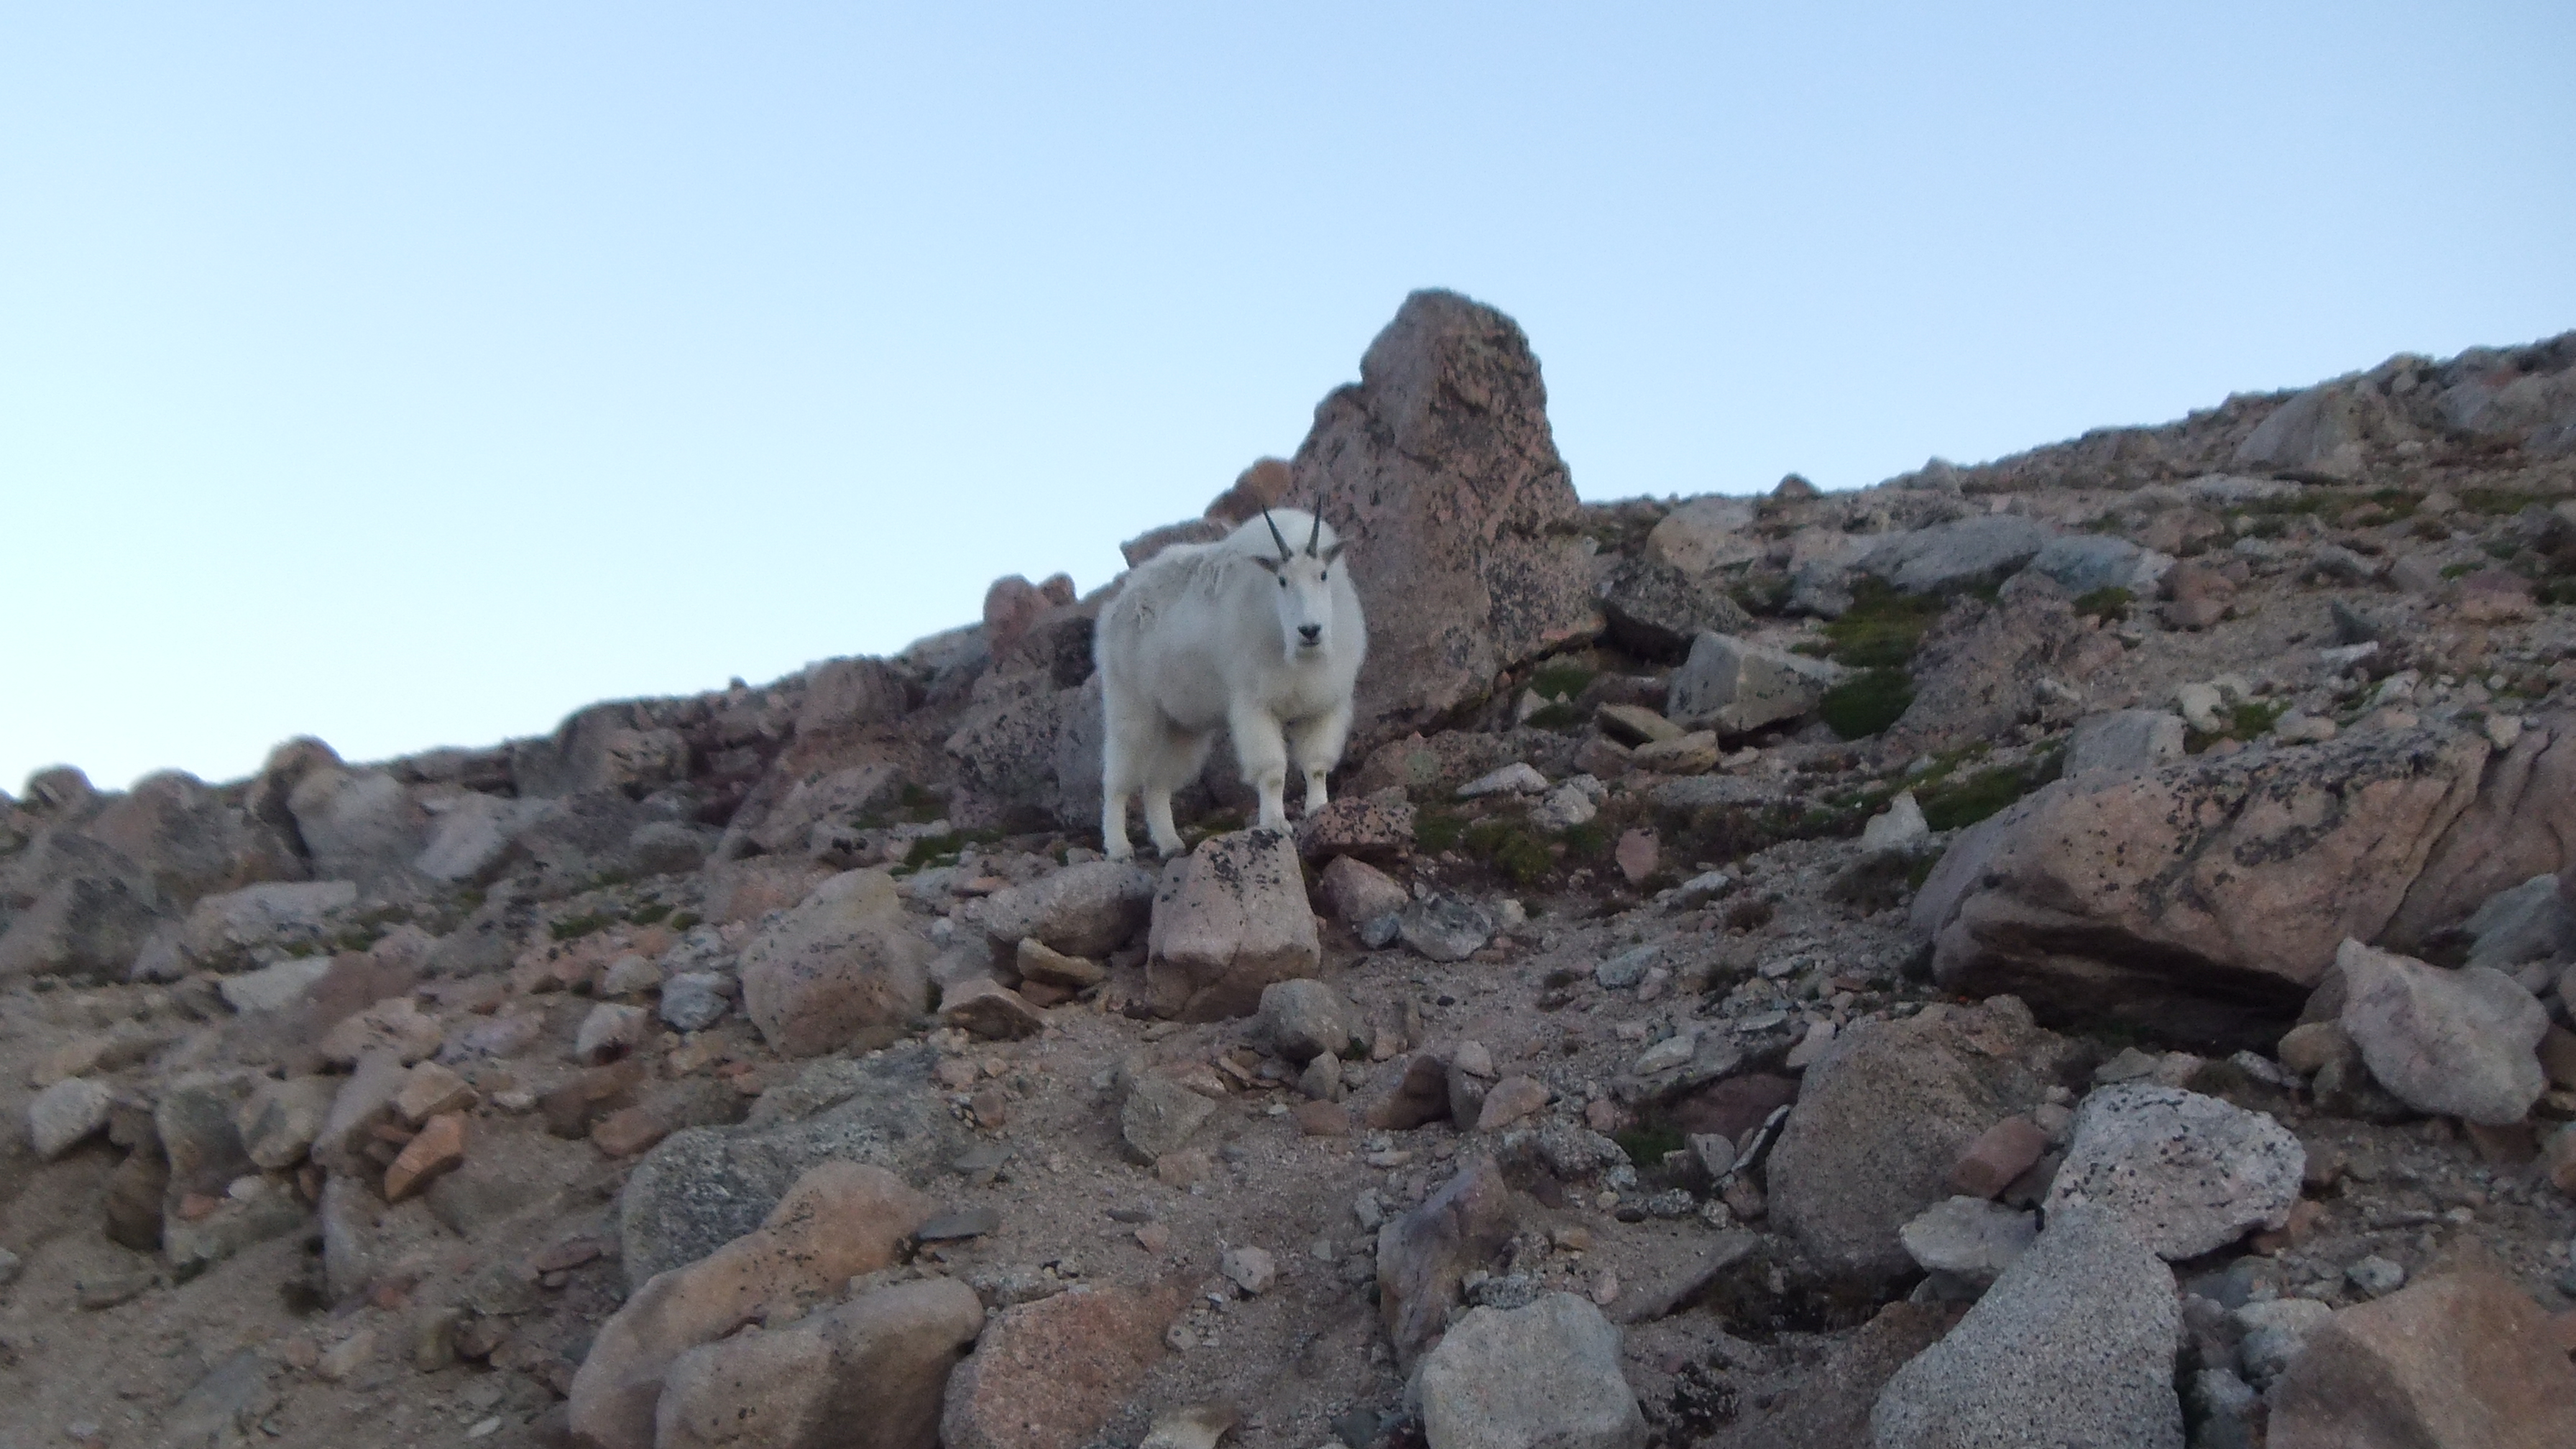 Wild Mountain Goat on Mt. Evans in Colorado